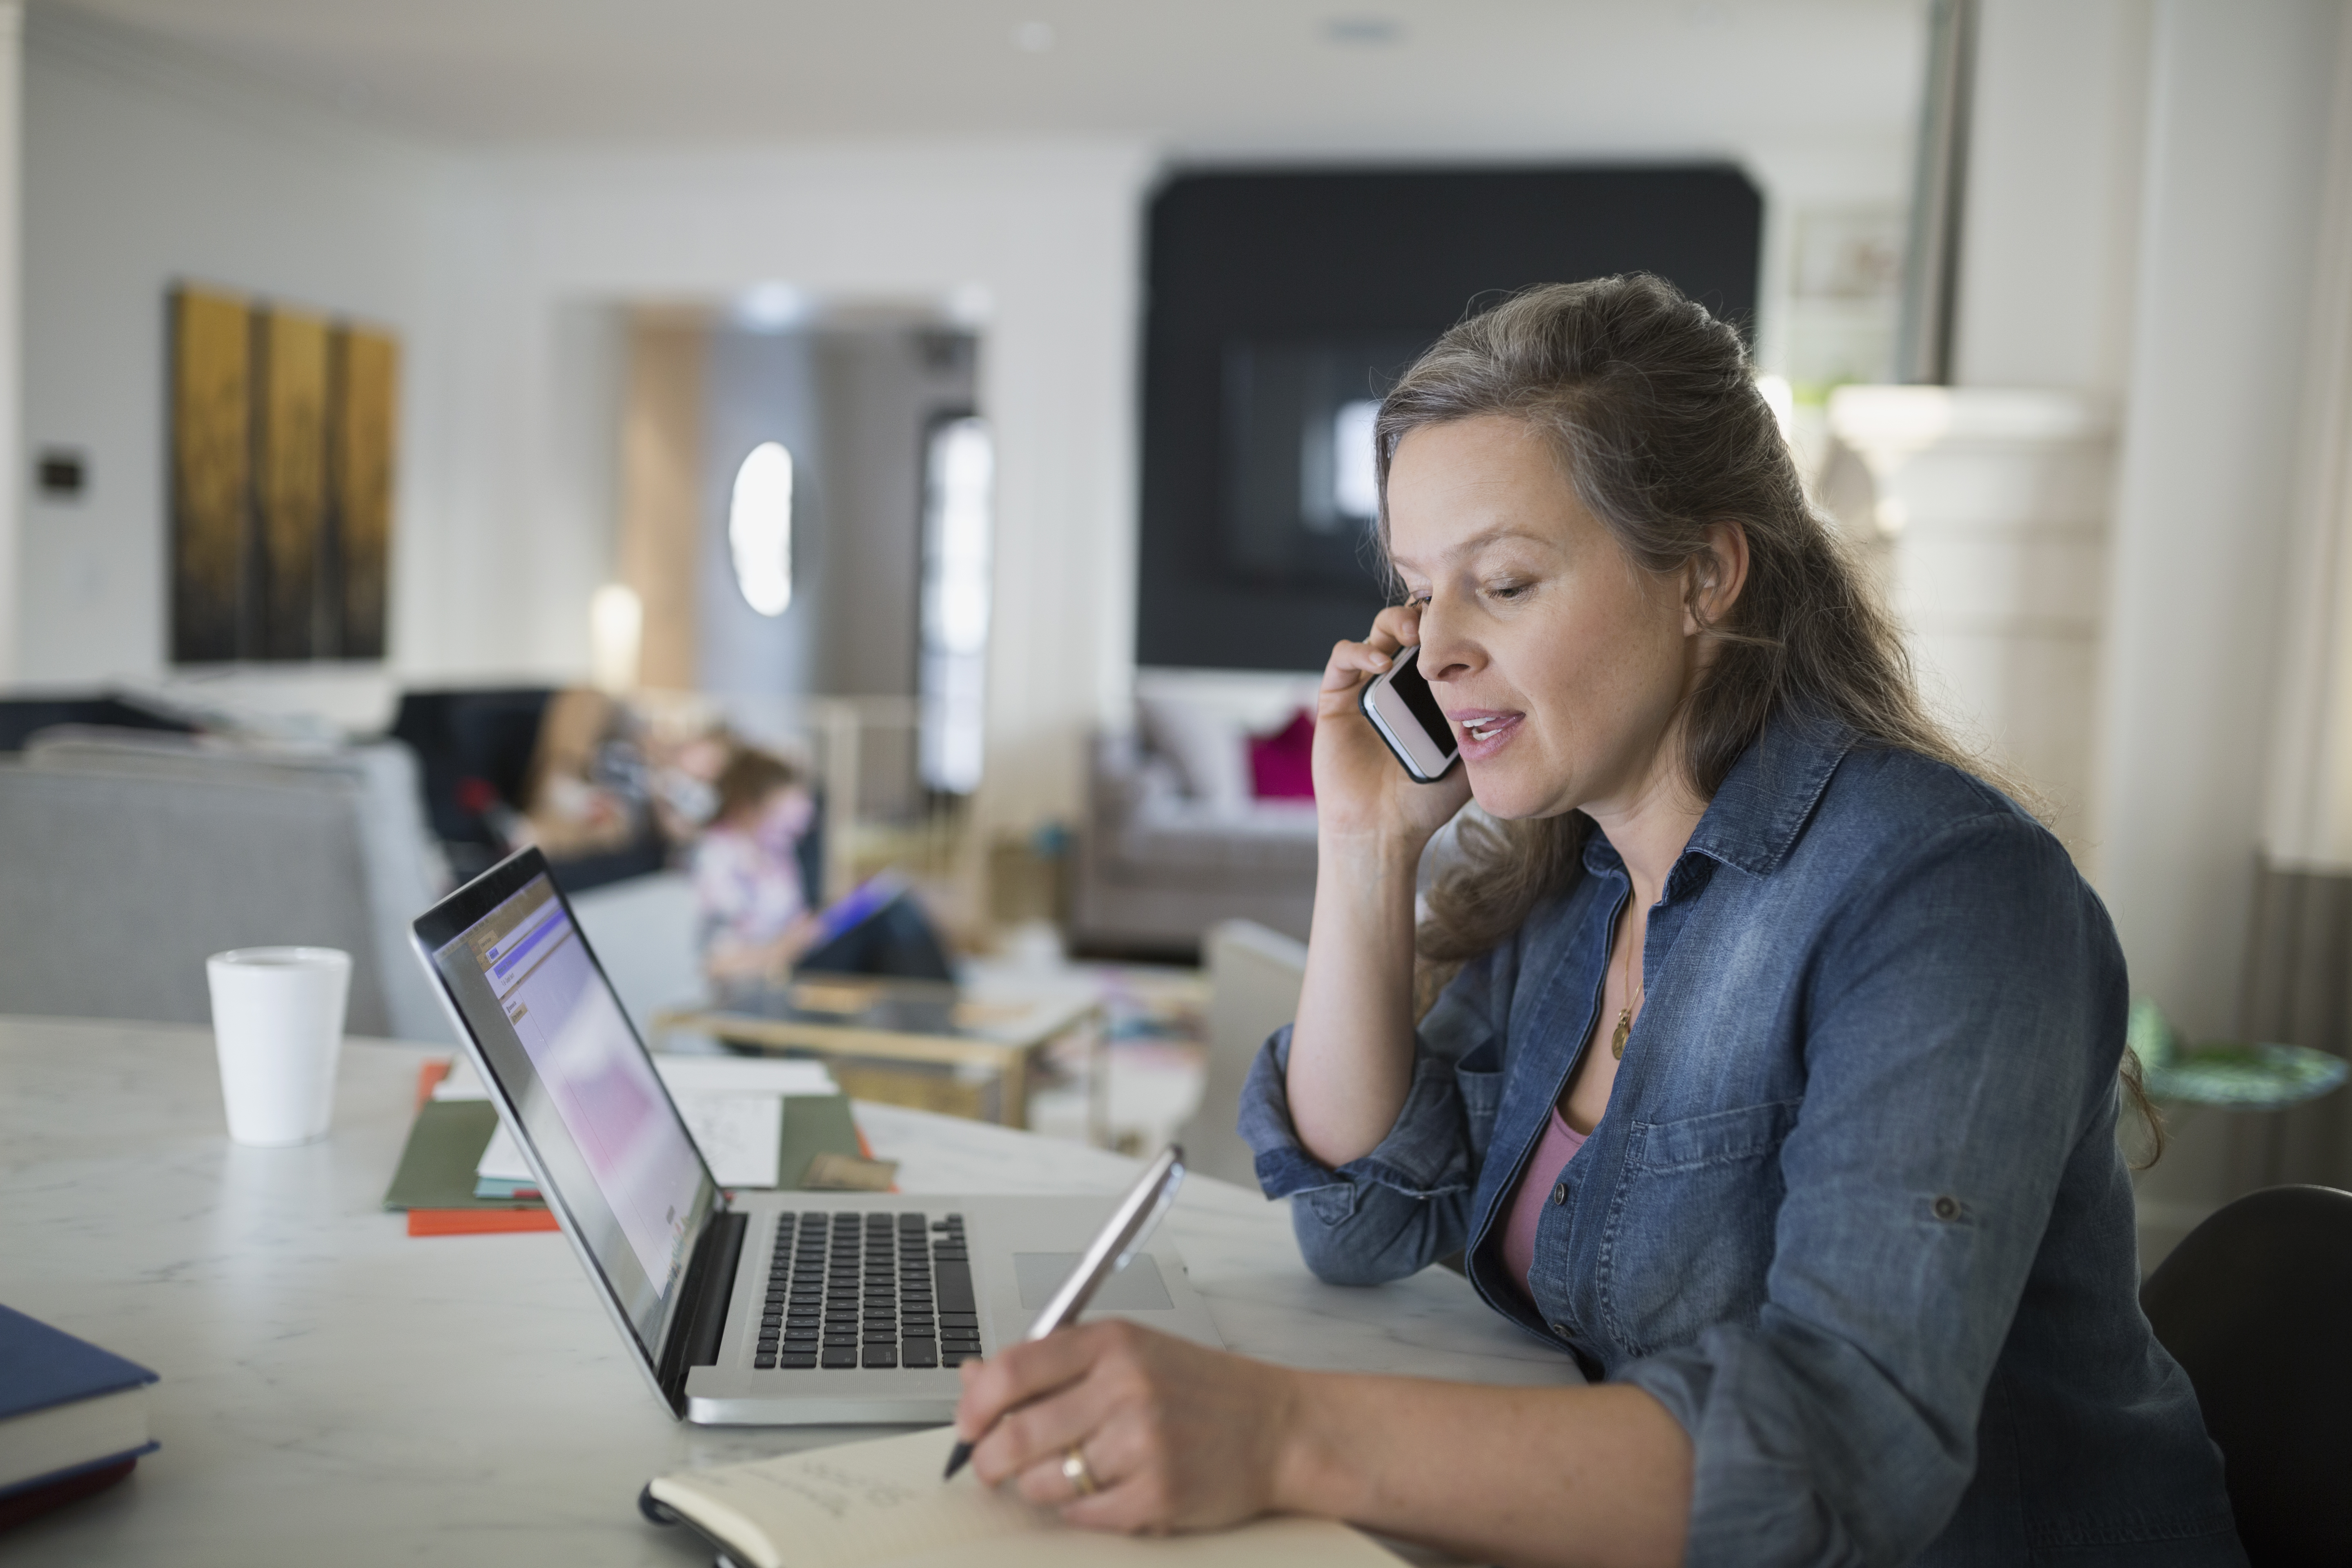 Woman talking on cell phone laptop at table